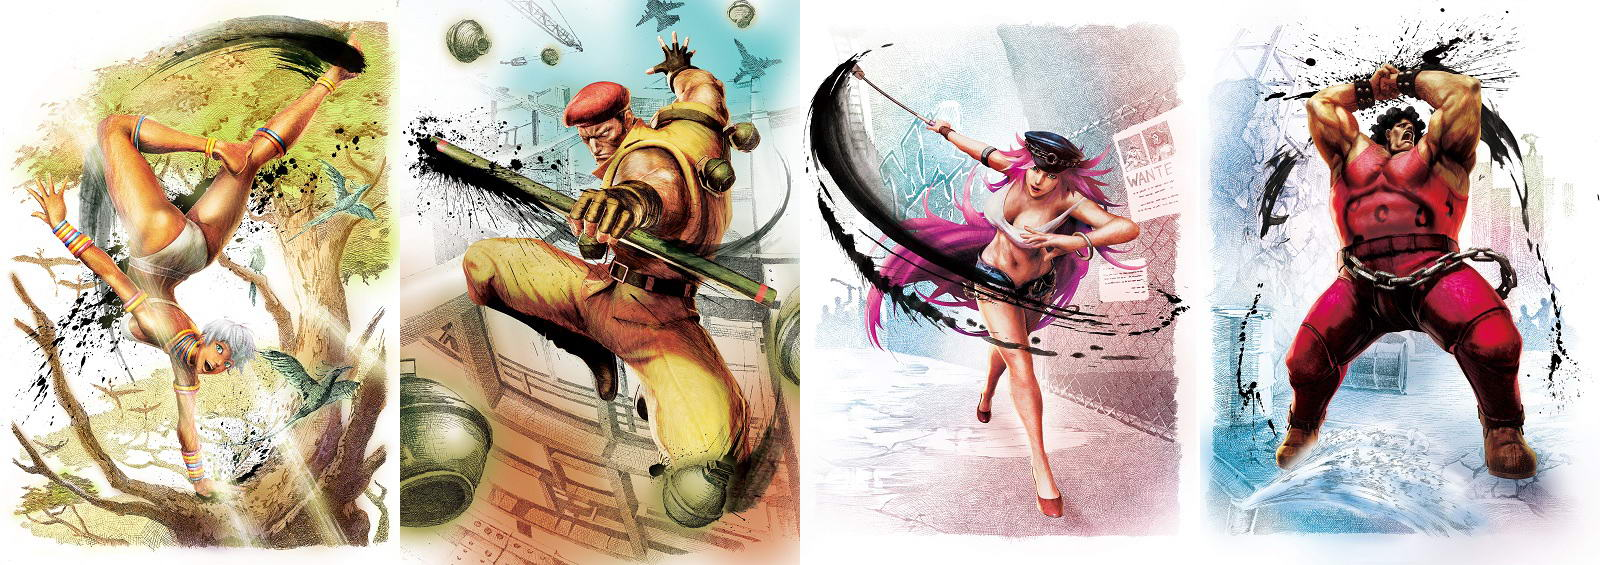 Ultra-Street-Fighter-IV-Elena-Rolento-Poison-Hugo-Official-Artwork